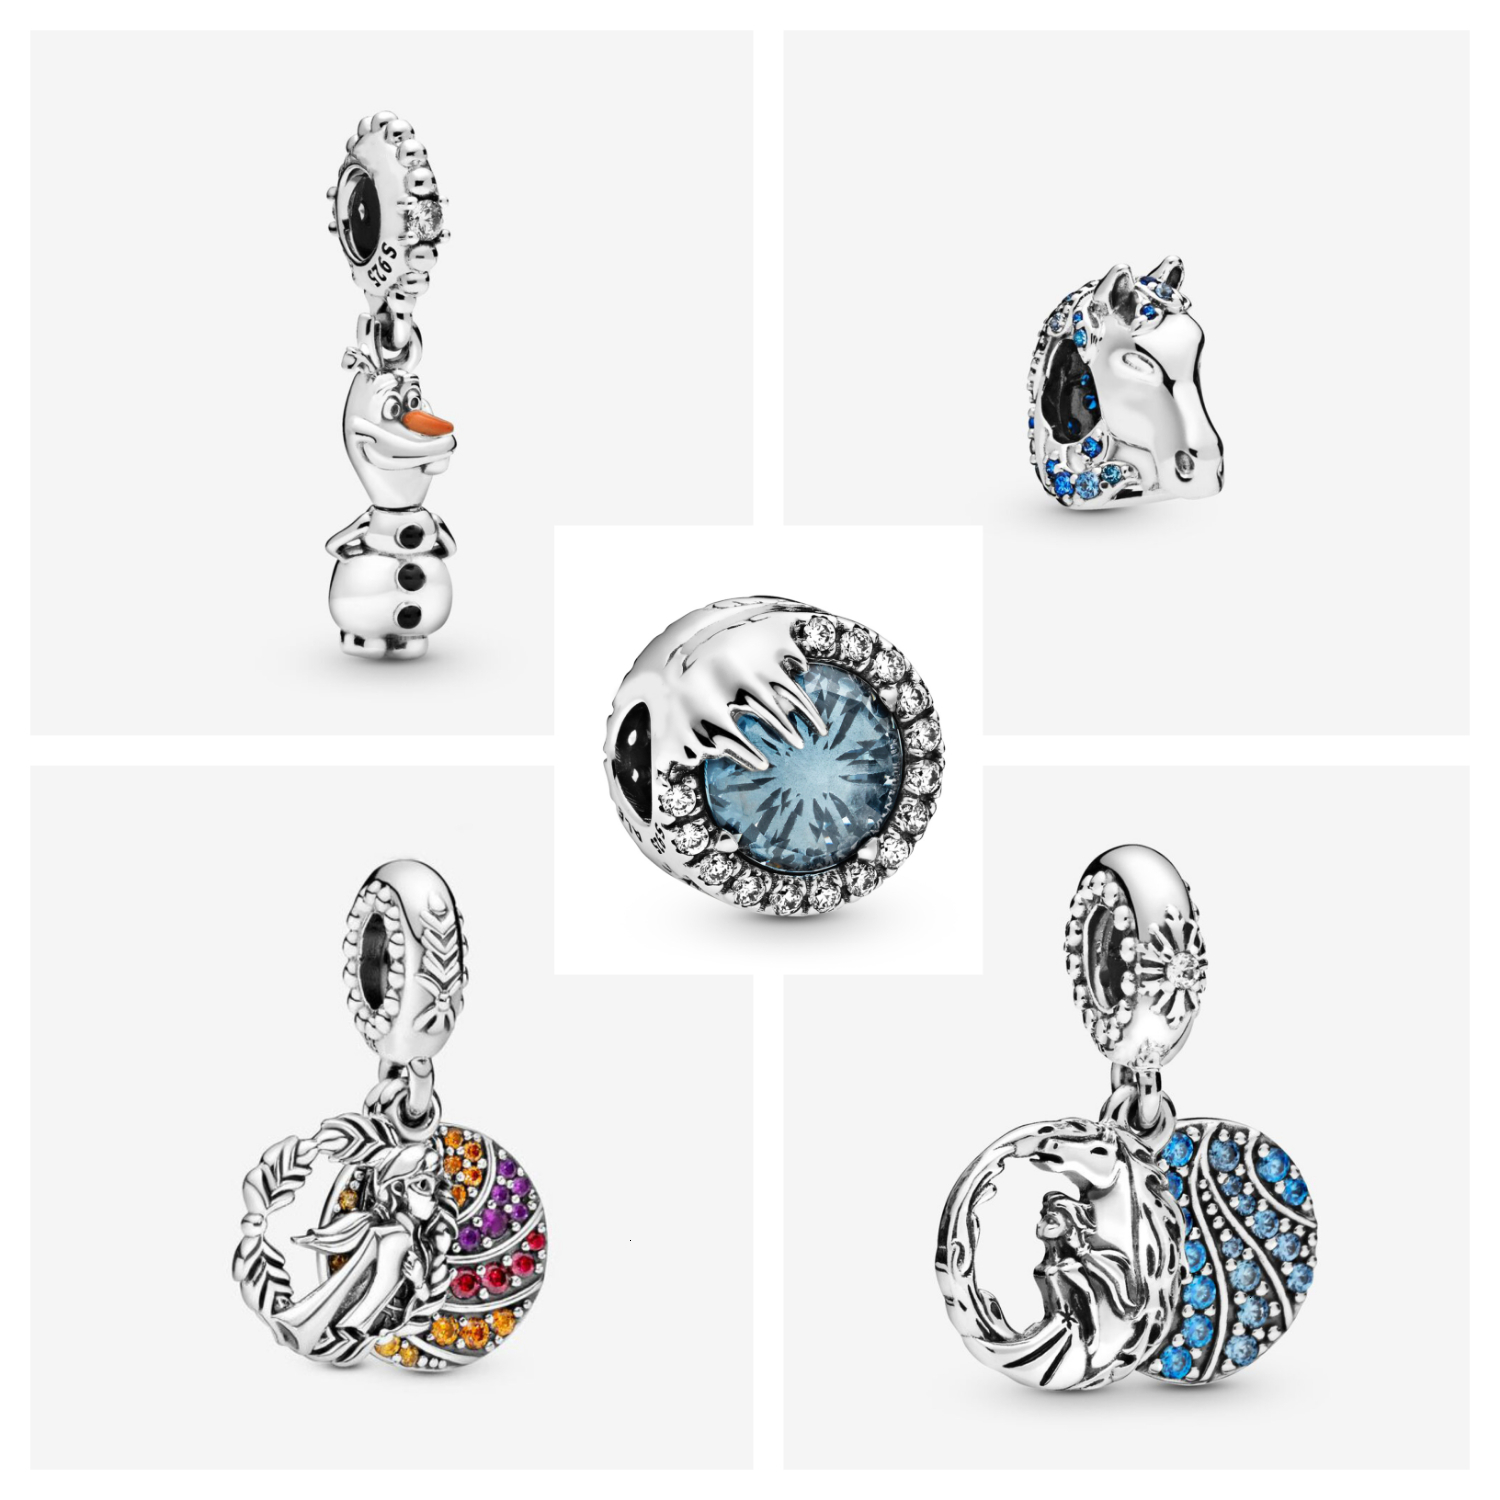 2019 Winter Authentic 925 Sterling Silver Frozen Anna Dangle Charm Frozen Olaf  Fit  Bracelet Bangle  Pendant DIY Jewelry